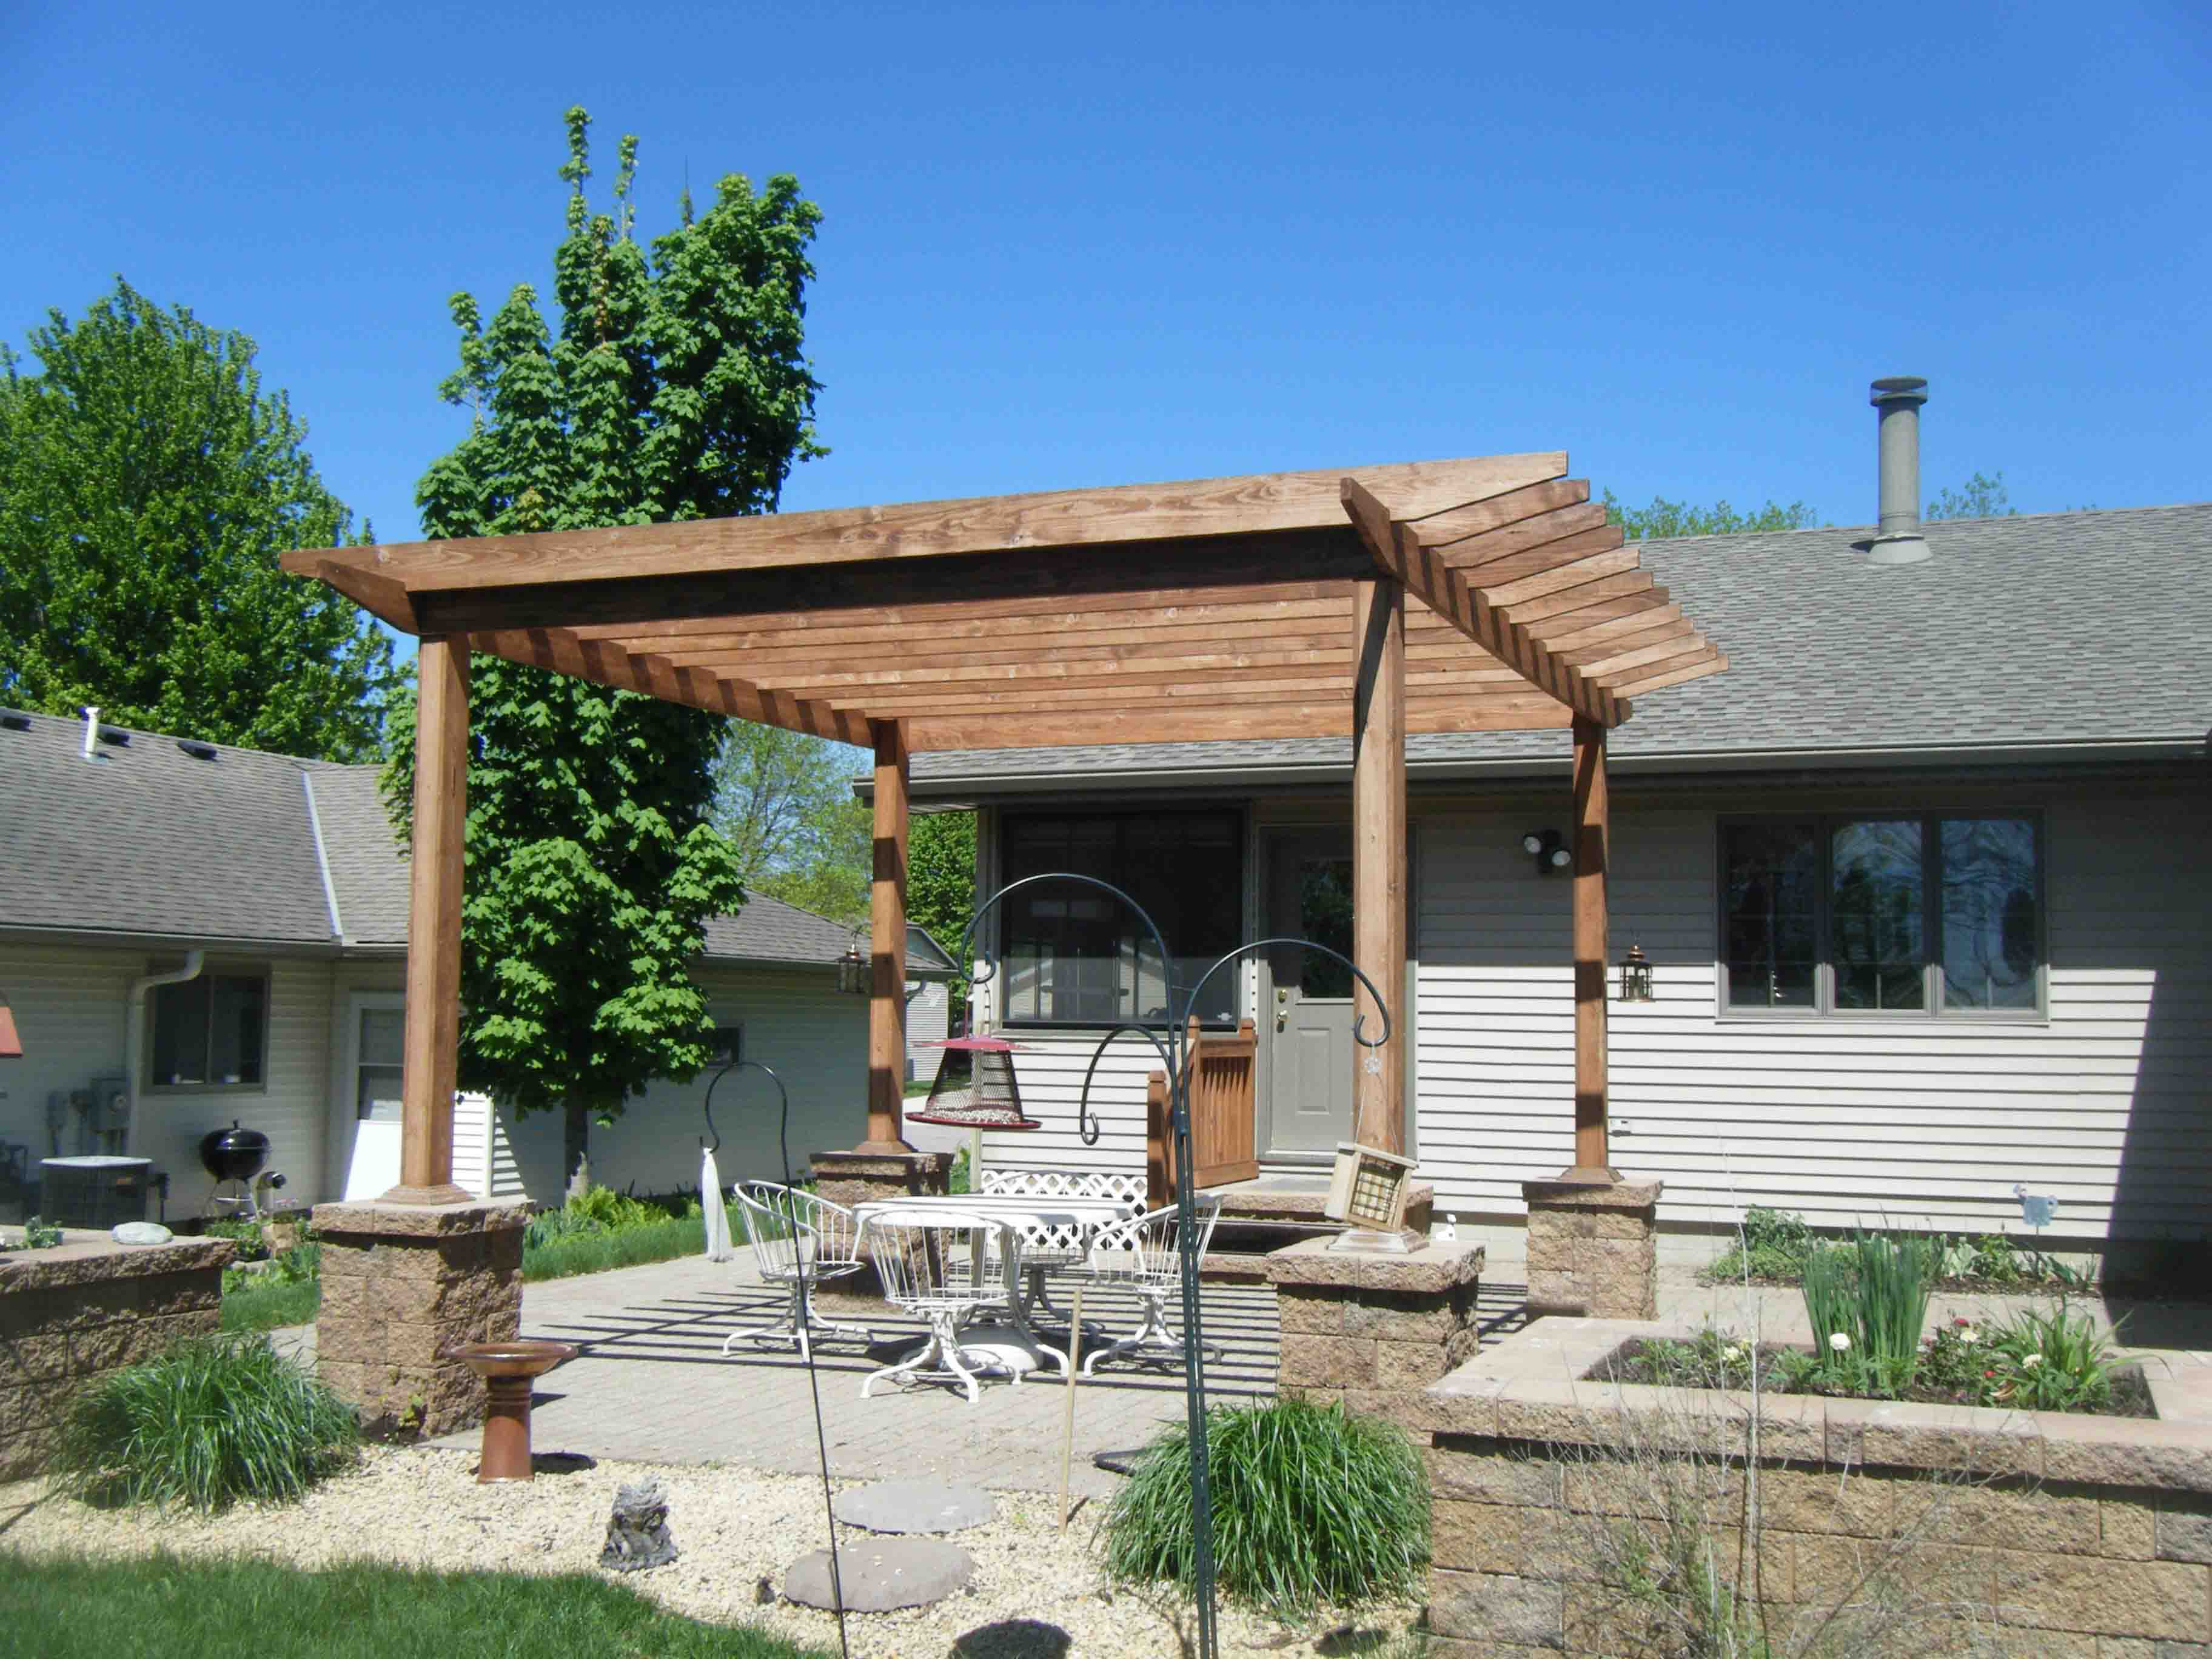 Landscaping ideas: Pergolas - Leading Edge Landscapes on Outdoor Living And Landscapes id=25644